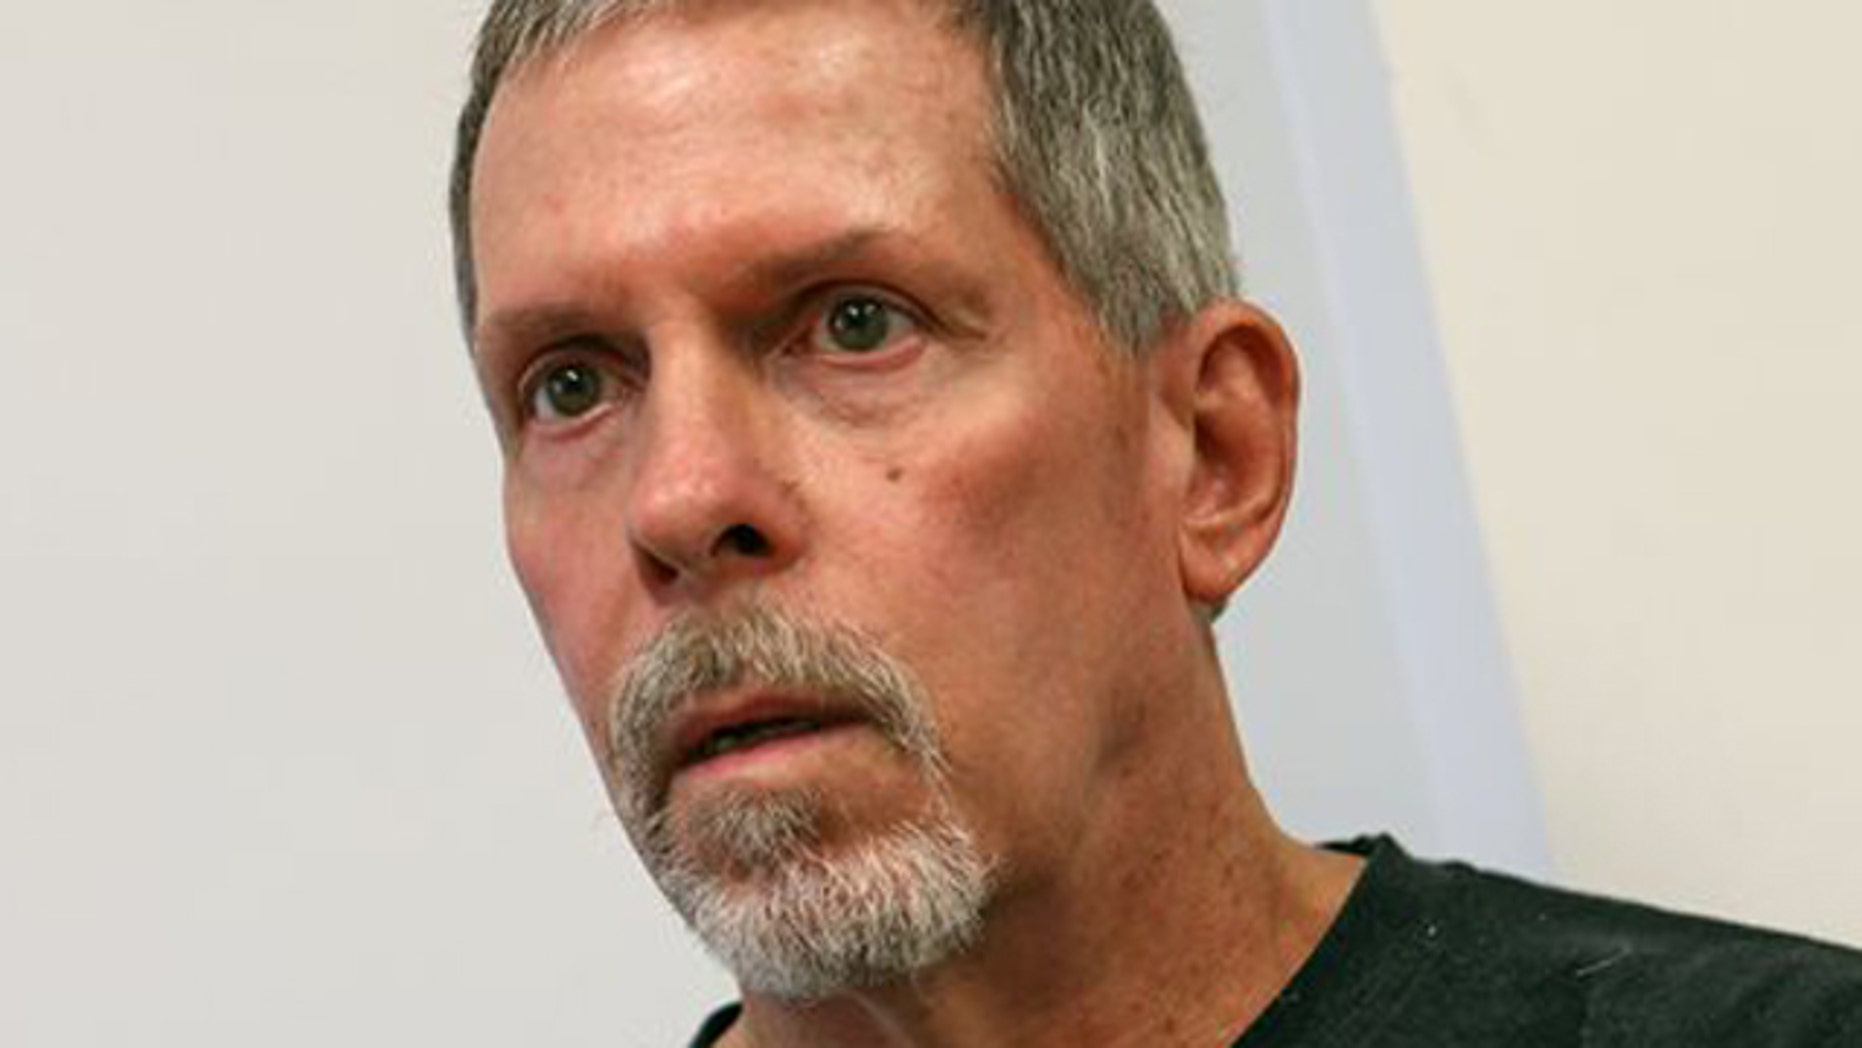 June 28, 2013: Michael Boatwright, who refers to himself as Johan Ek, a 61-year-old Florida man who awoke with no memory of his past speaking only Swedish and no English, in Palm Springs, Calif.